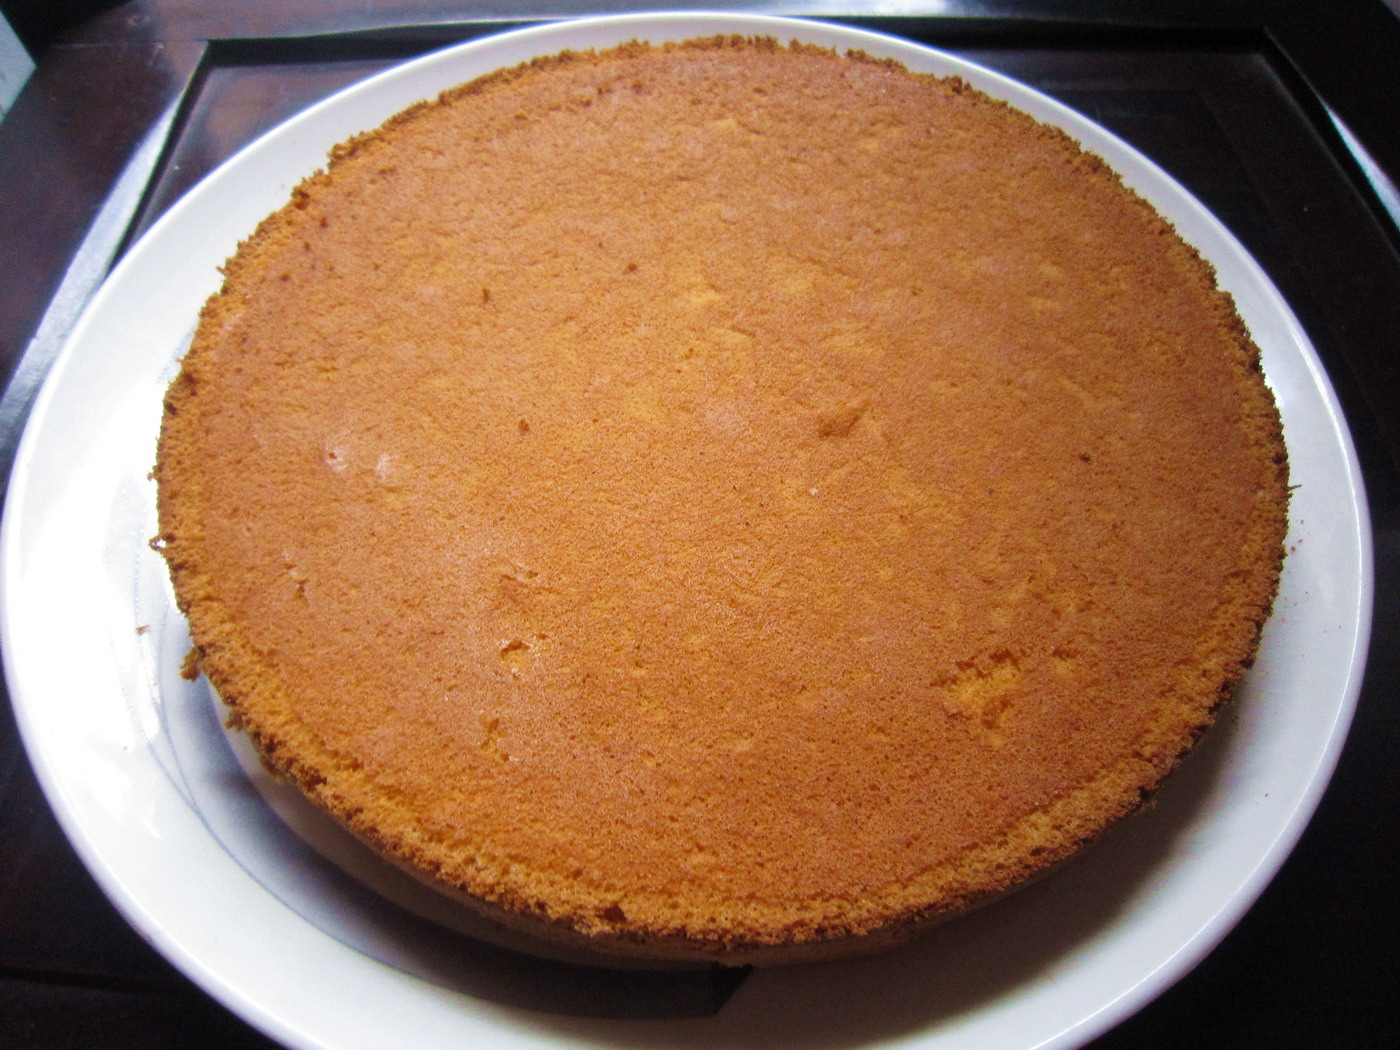 Basic Cake Recipe With Butter